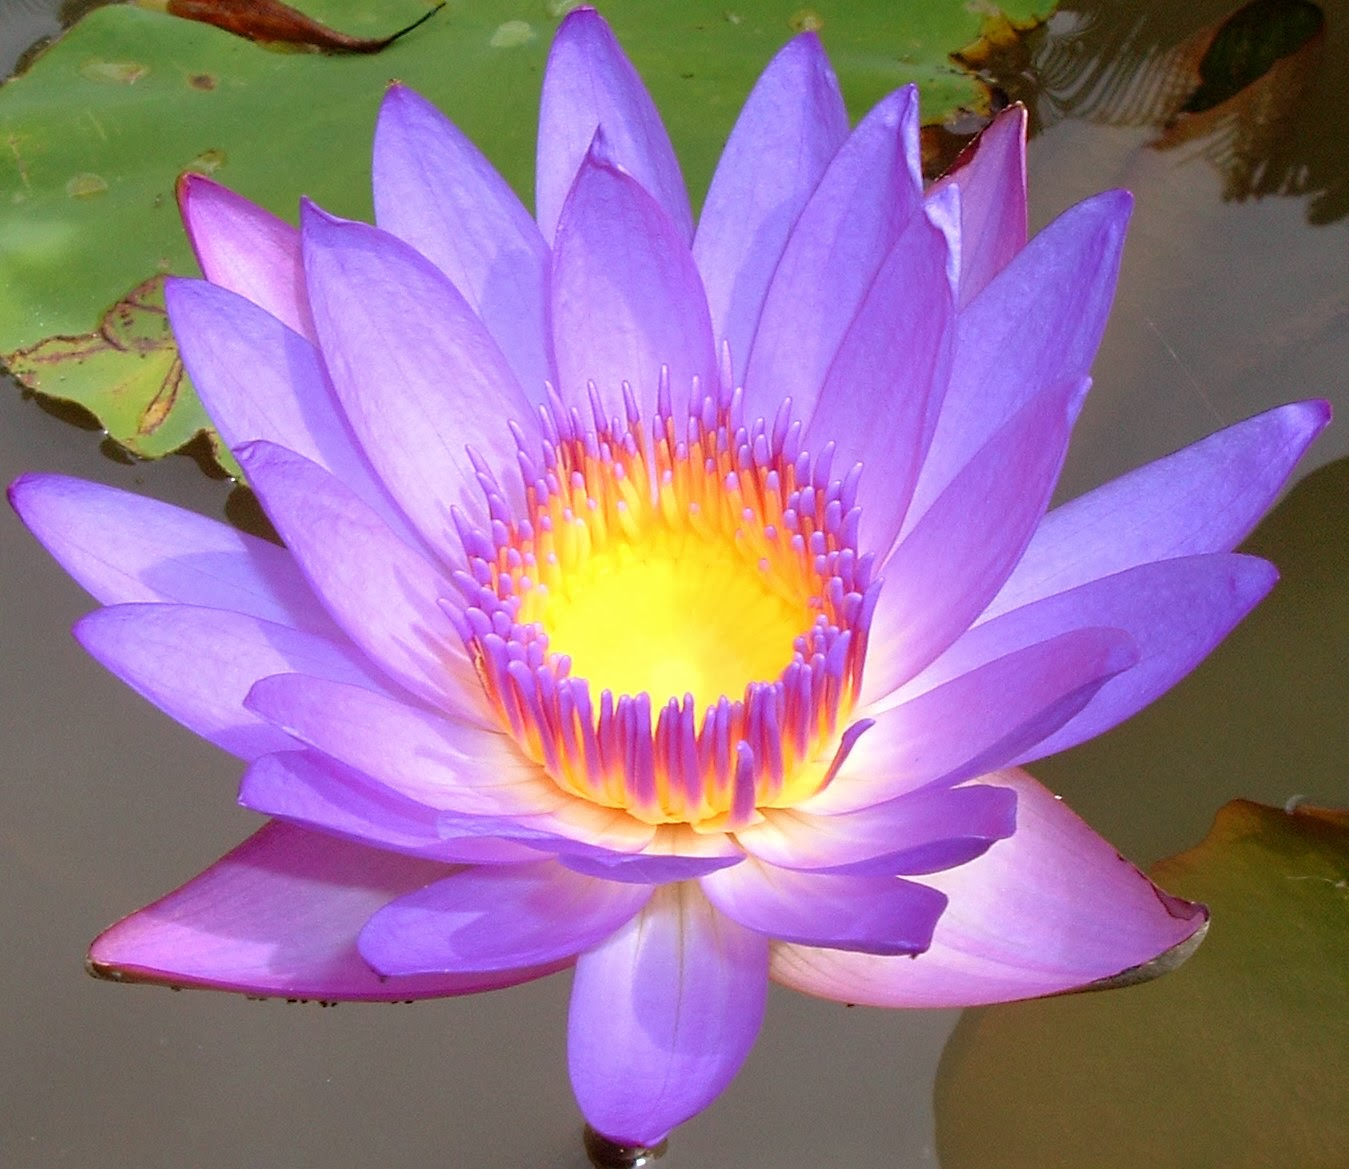 Beauty flower lotus flowers lotus flowers type of flowers mightylinksfo